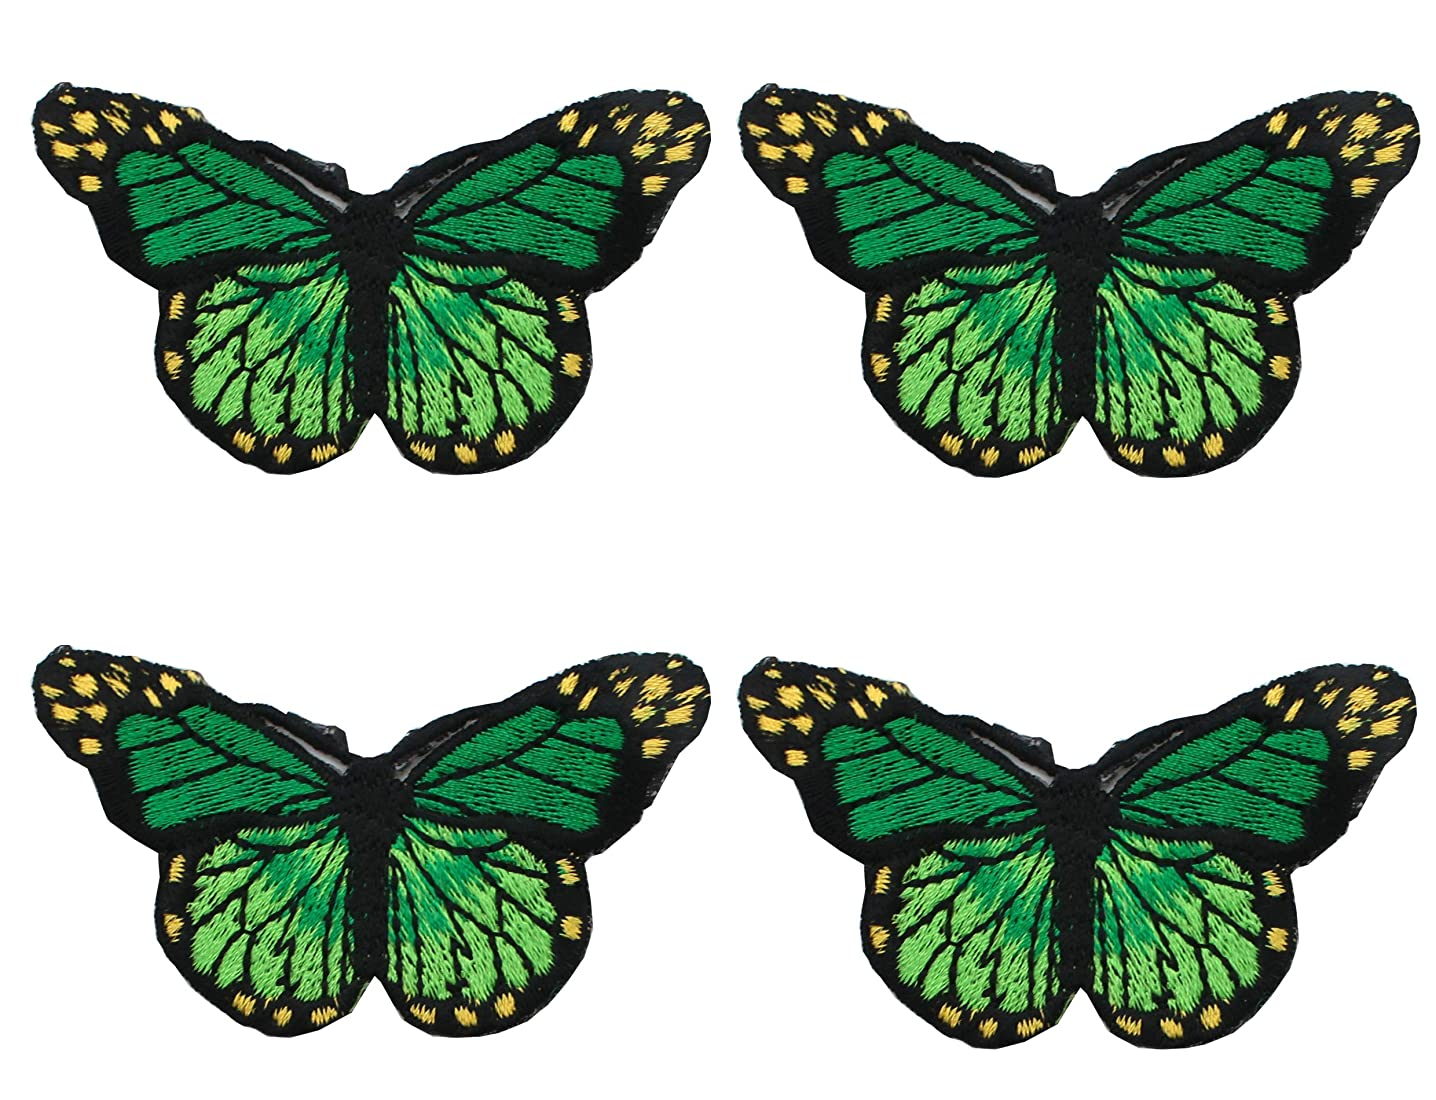 4 Piece Embroidery Iron On Appliques Blue Butterfly Motifs Craft Sewing Embroidery Patches (green)